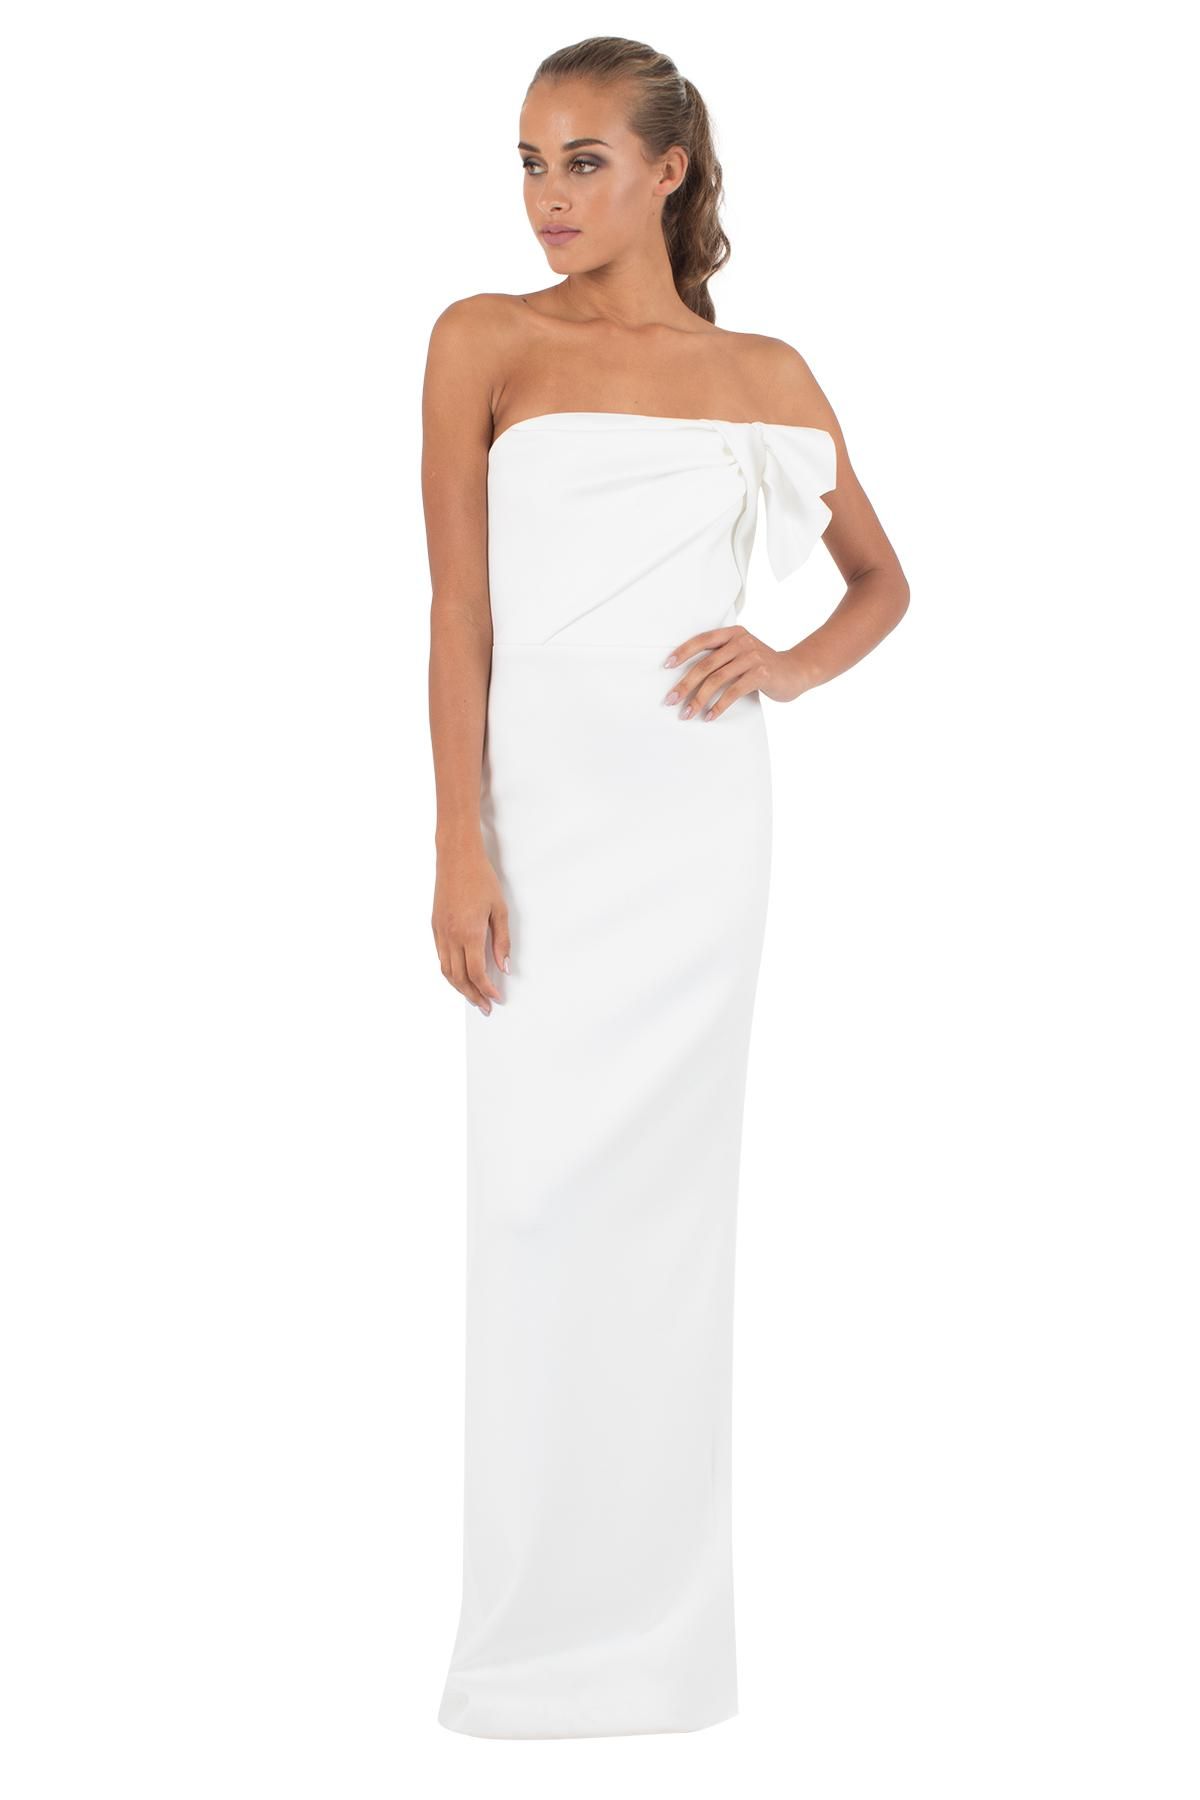 Lyst - Black Halo Divina Gown in White